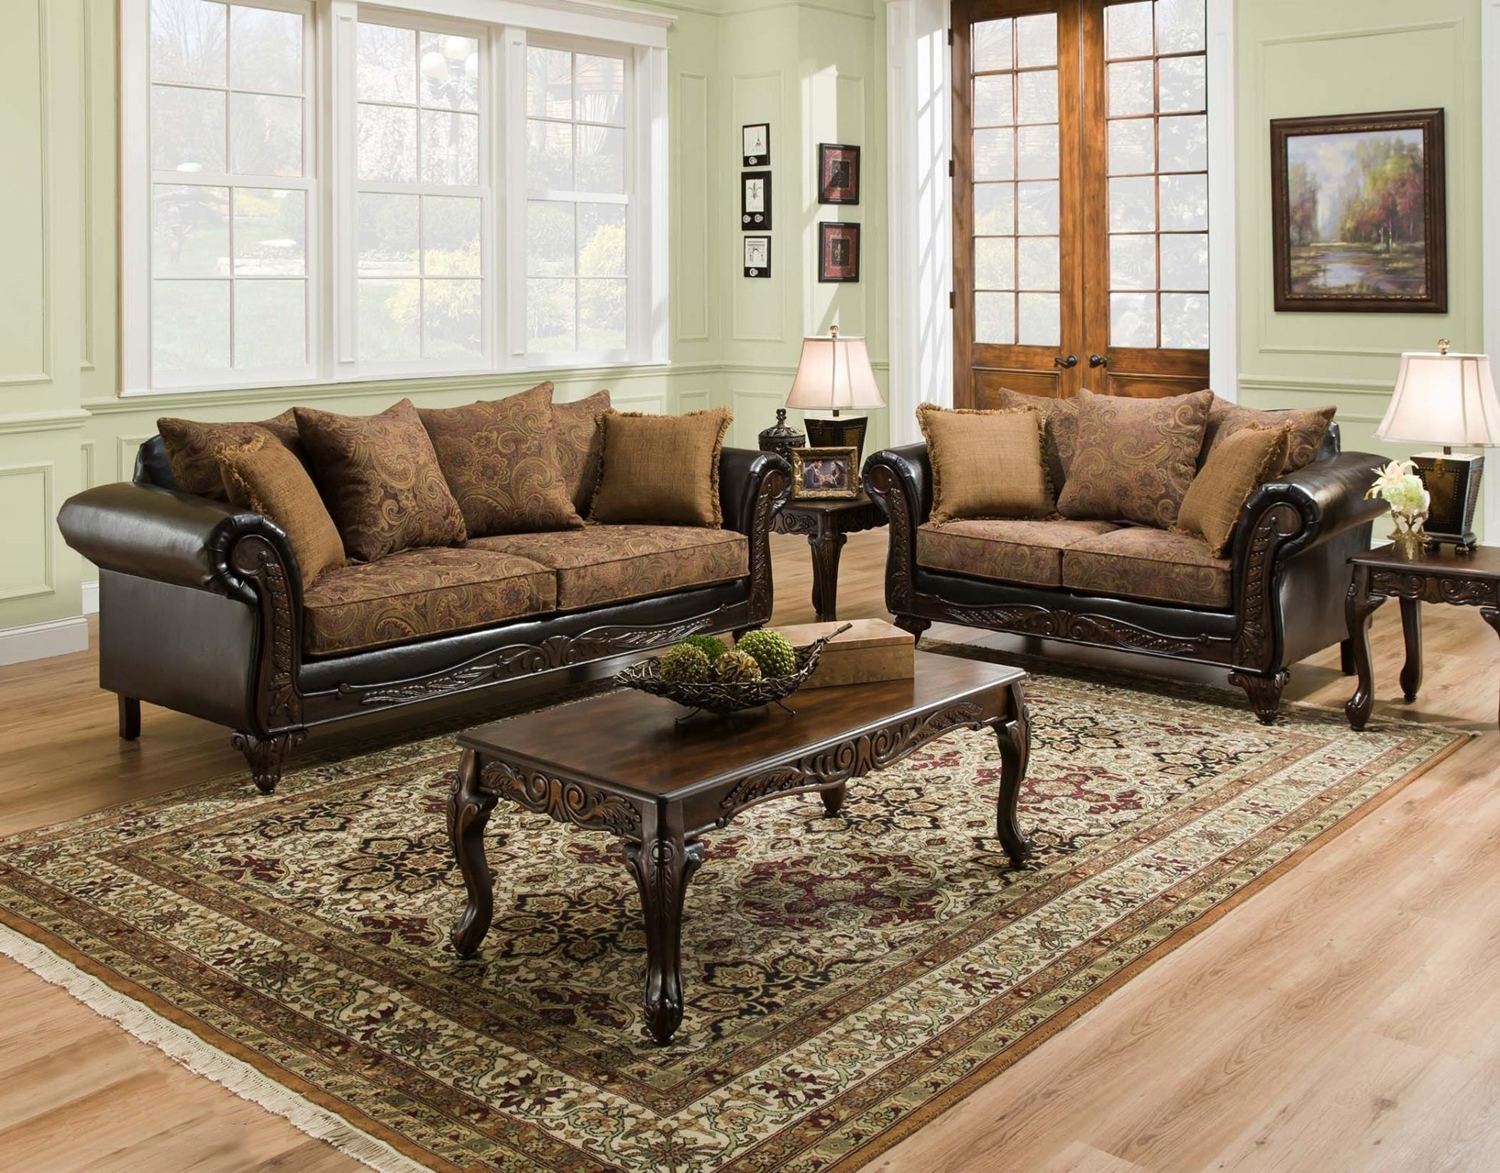 San marino traditional living room furniture set w wood for Traditional living room sets